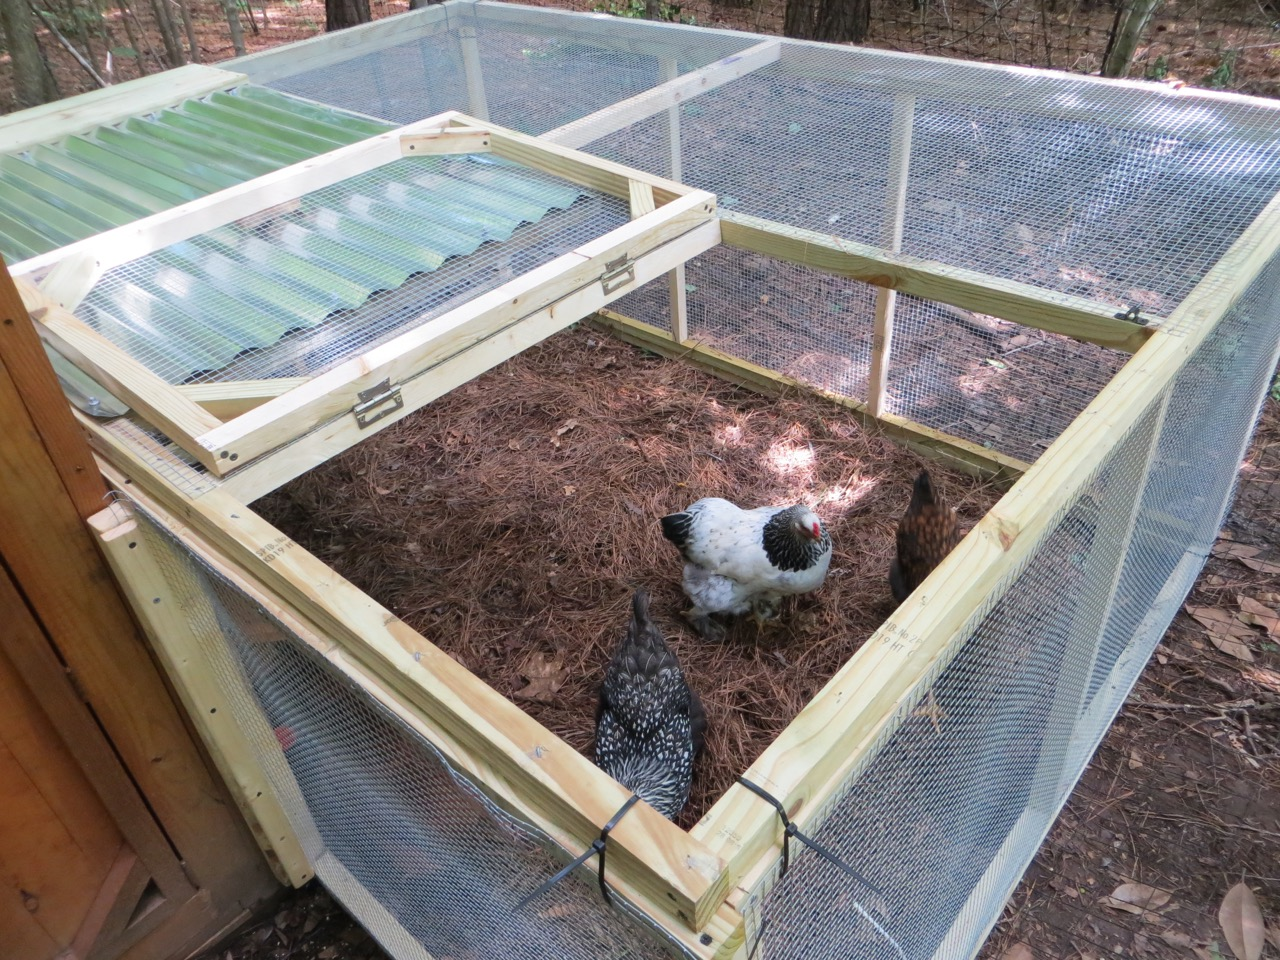 The project lady diy easy inexpensive chicken run for Chicken run for 6 chickens